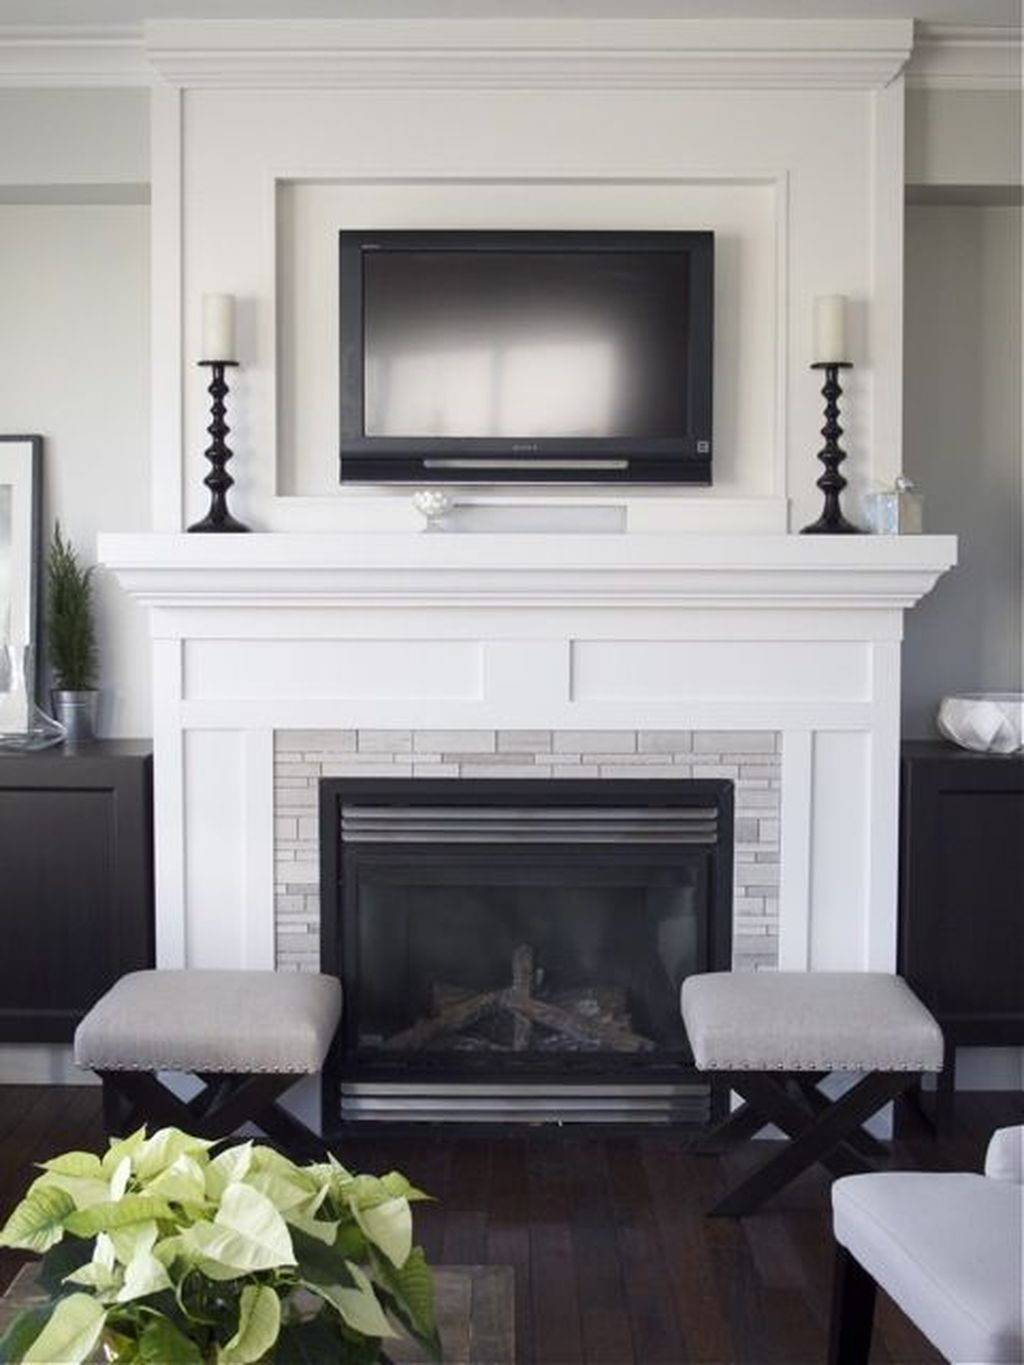 Cool Scandinavian Fireplace Design Ideas To Amaze Your Guests 31